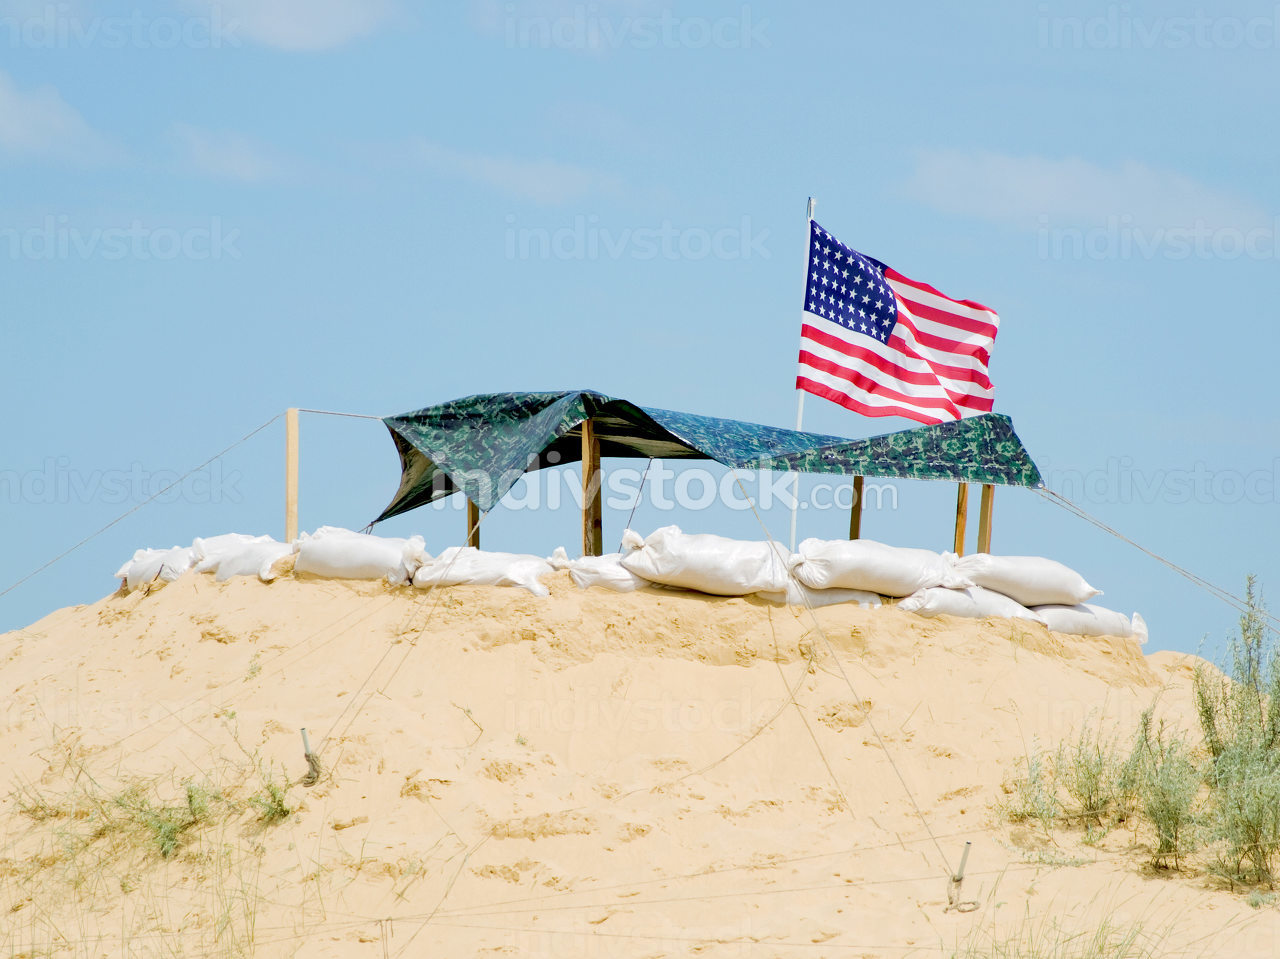 american military checkpoint with the US flag